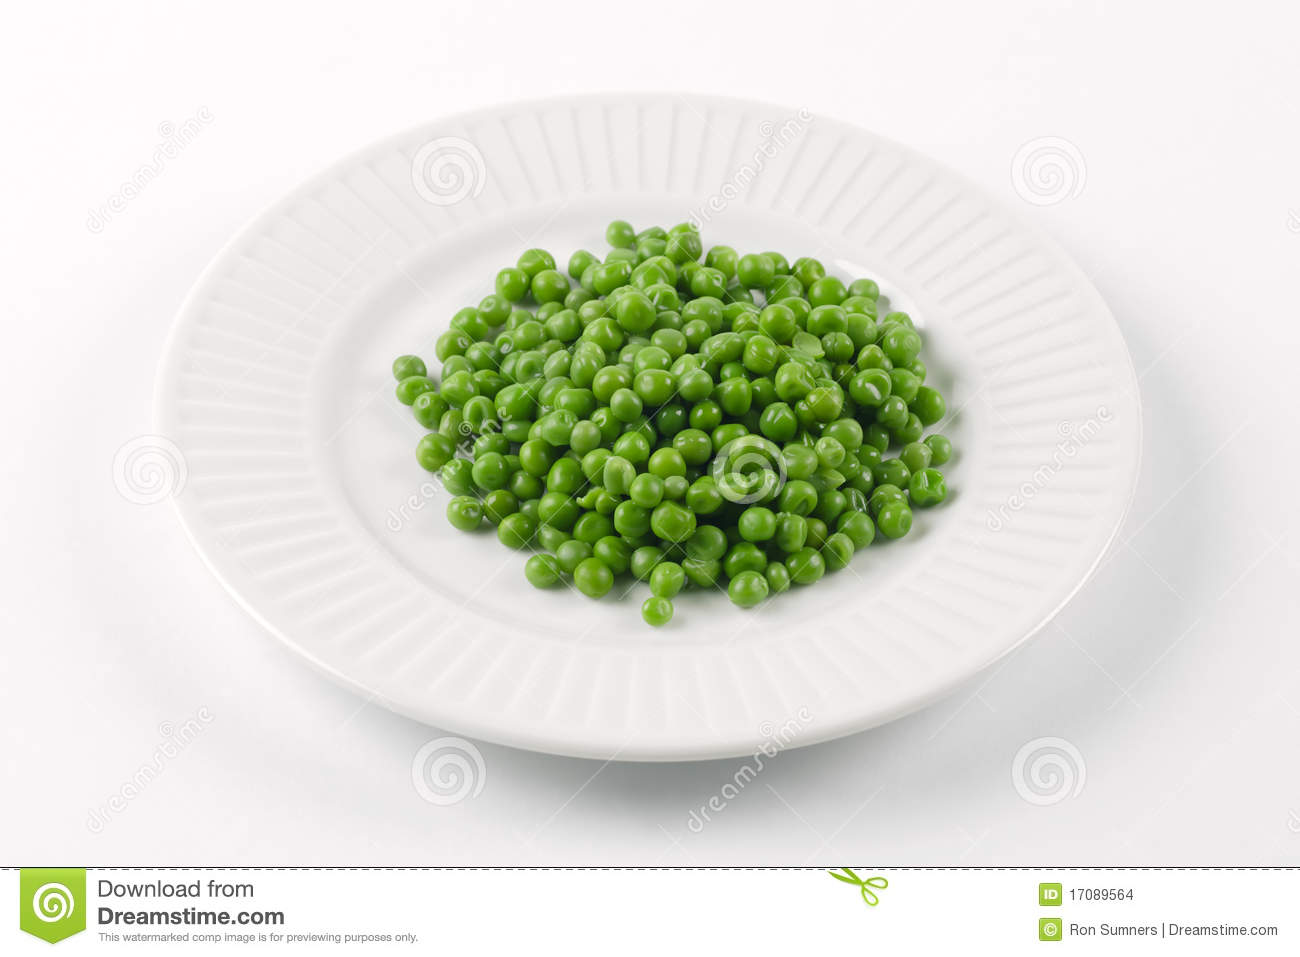 how to cook blue peas